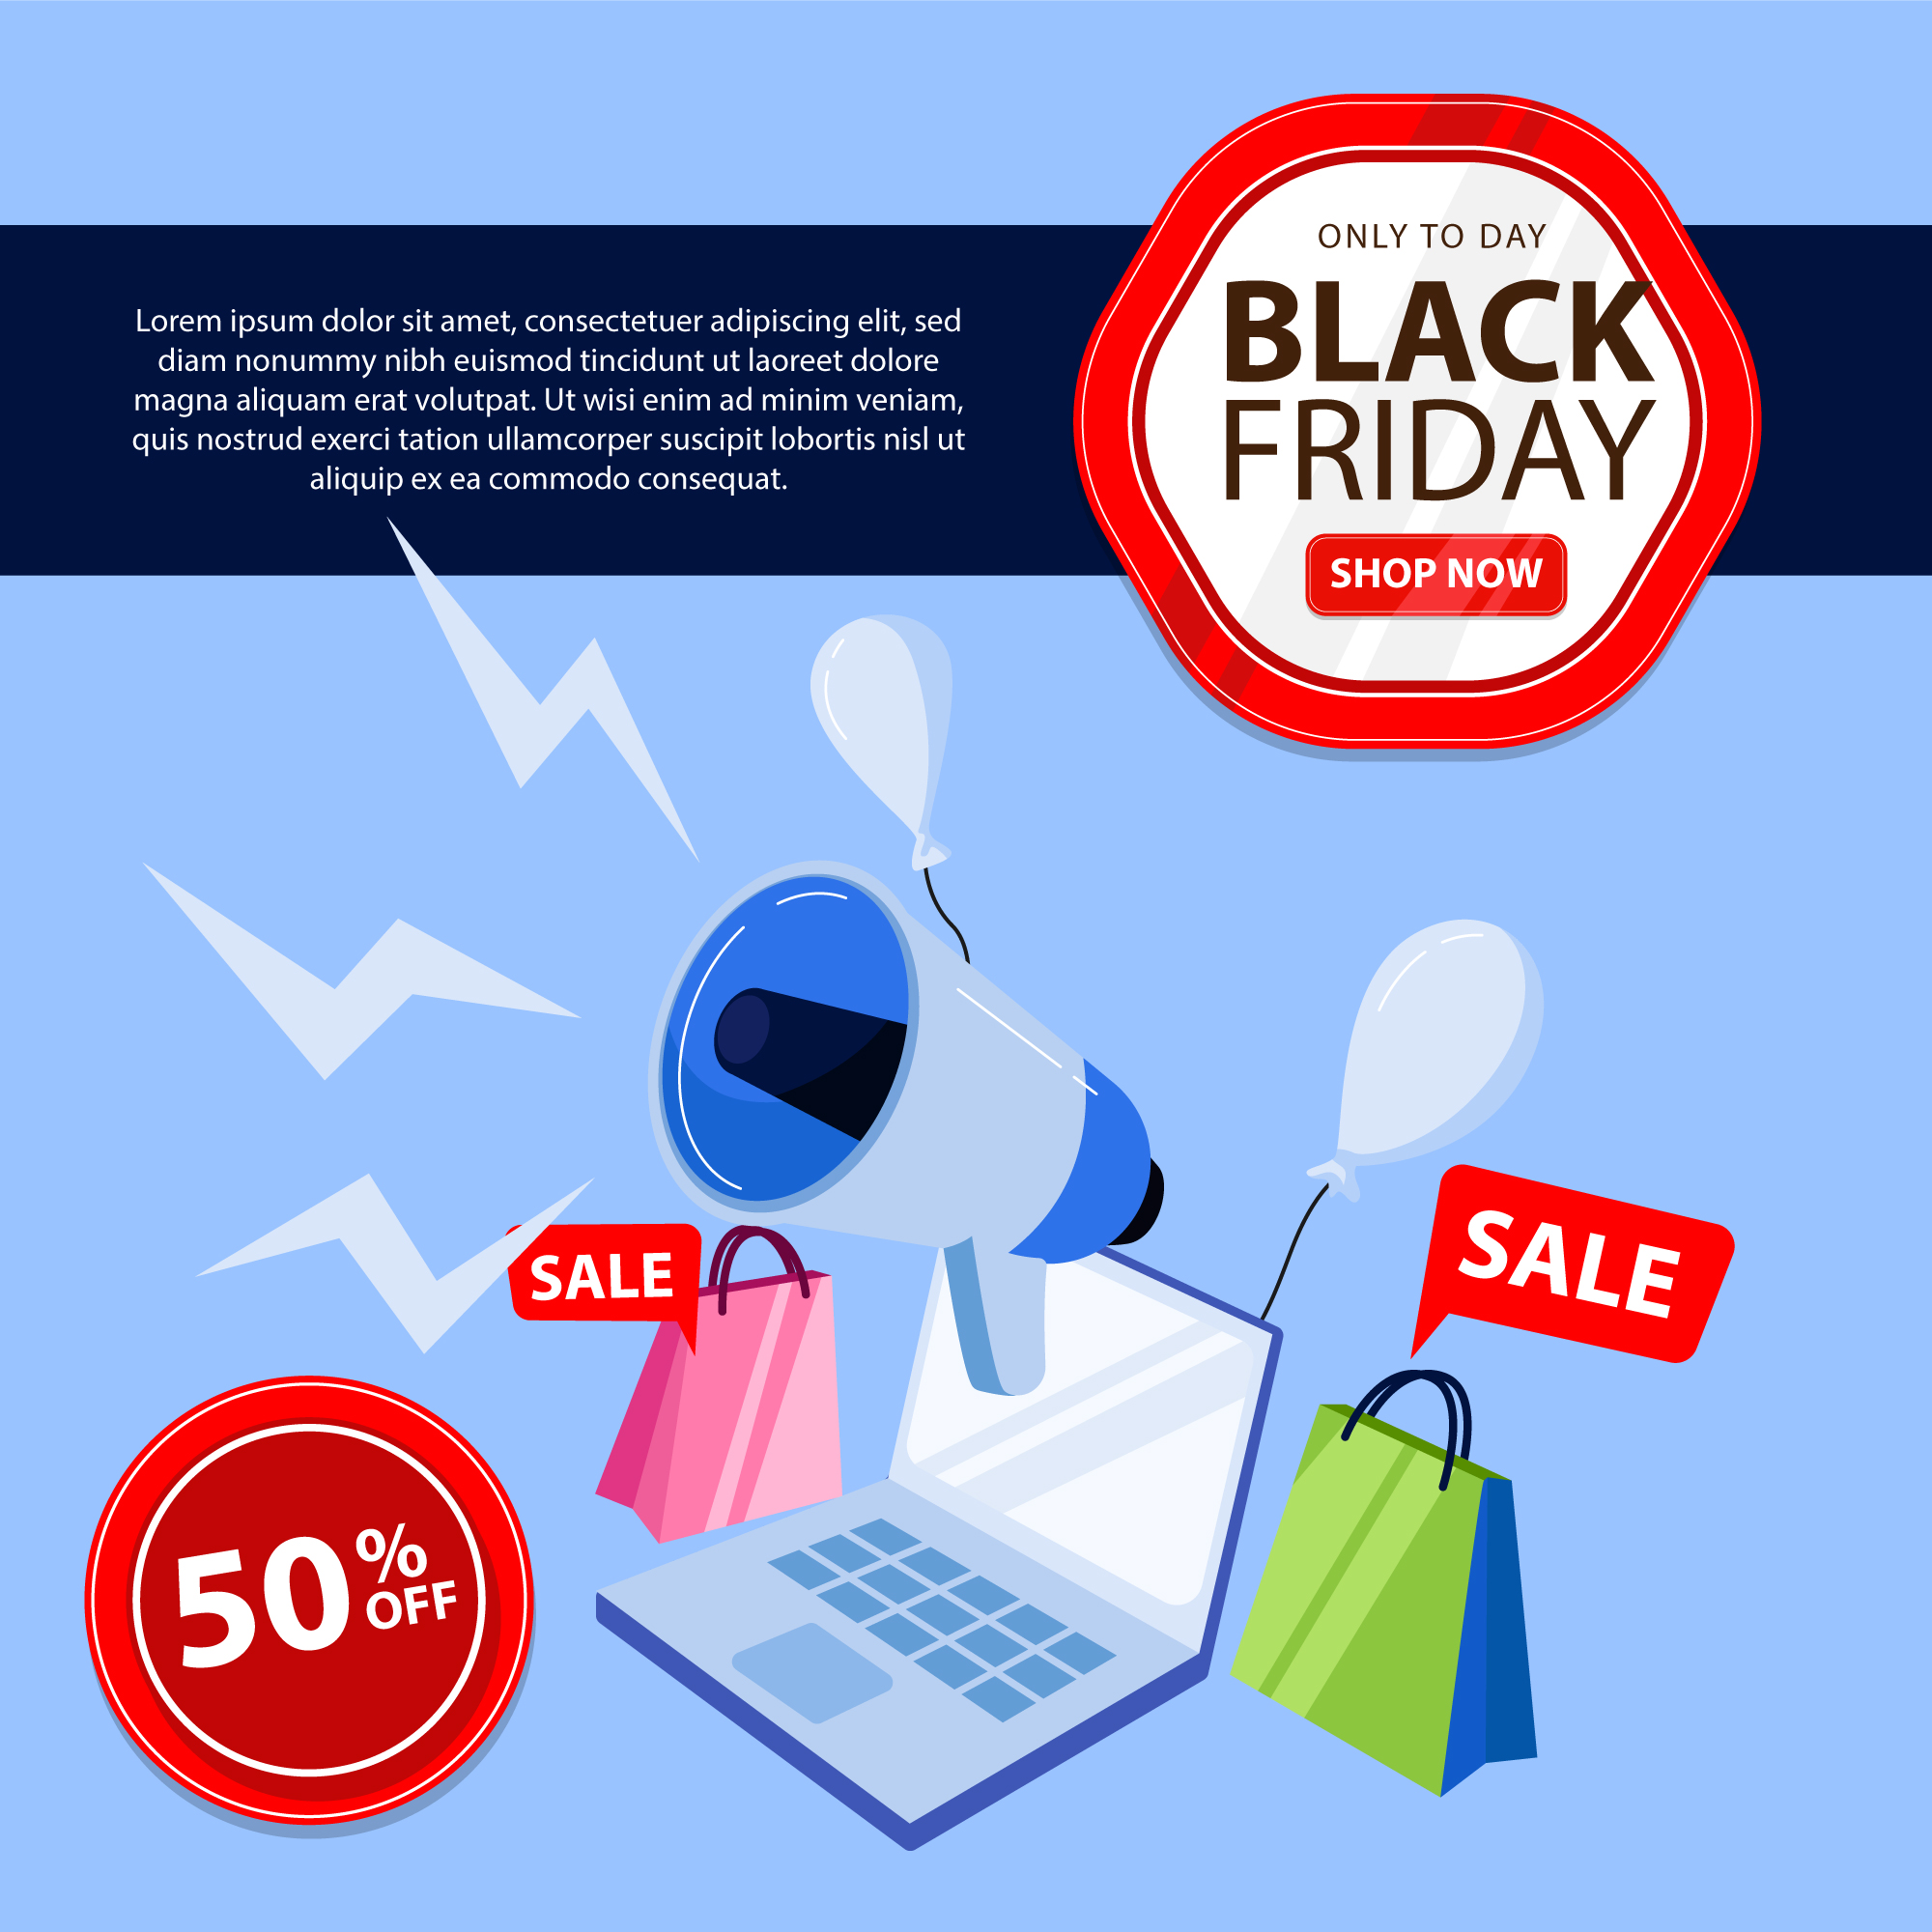 Black Friday Banner Perfect For Online Shop Business Download Free Vectors Clipart Graphics Vector Art